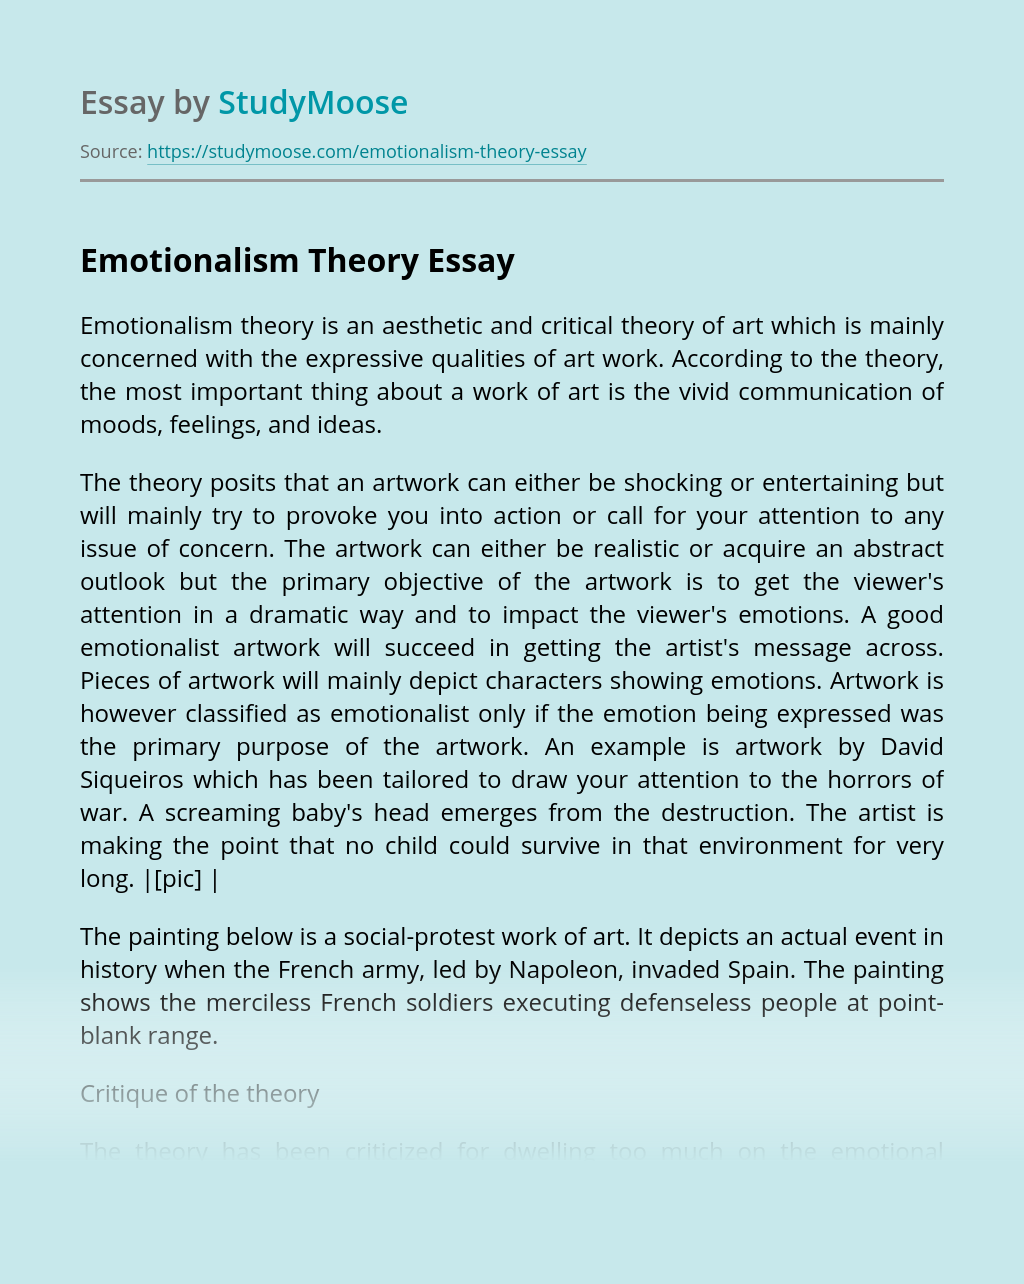 Emotionalism Theory